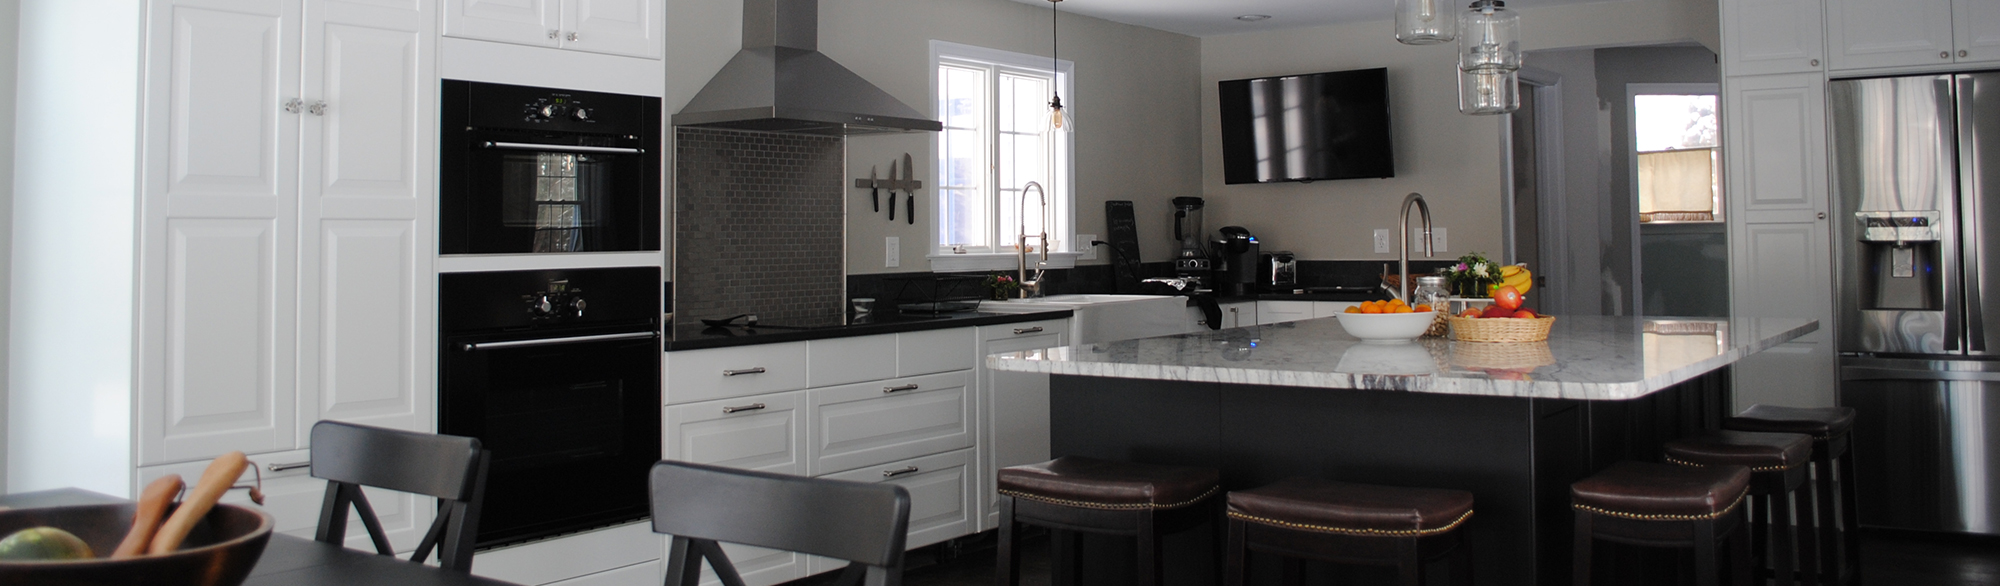 Southbury, CT Kitchen Remodeling Contractor | CT & NY